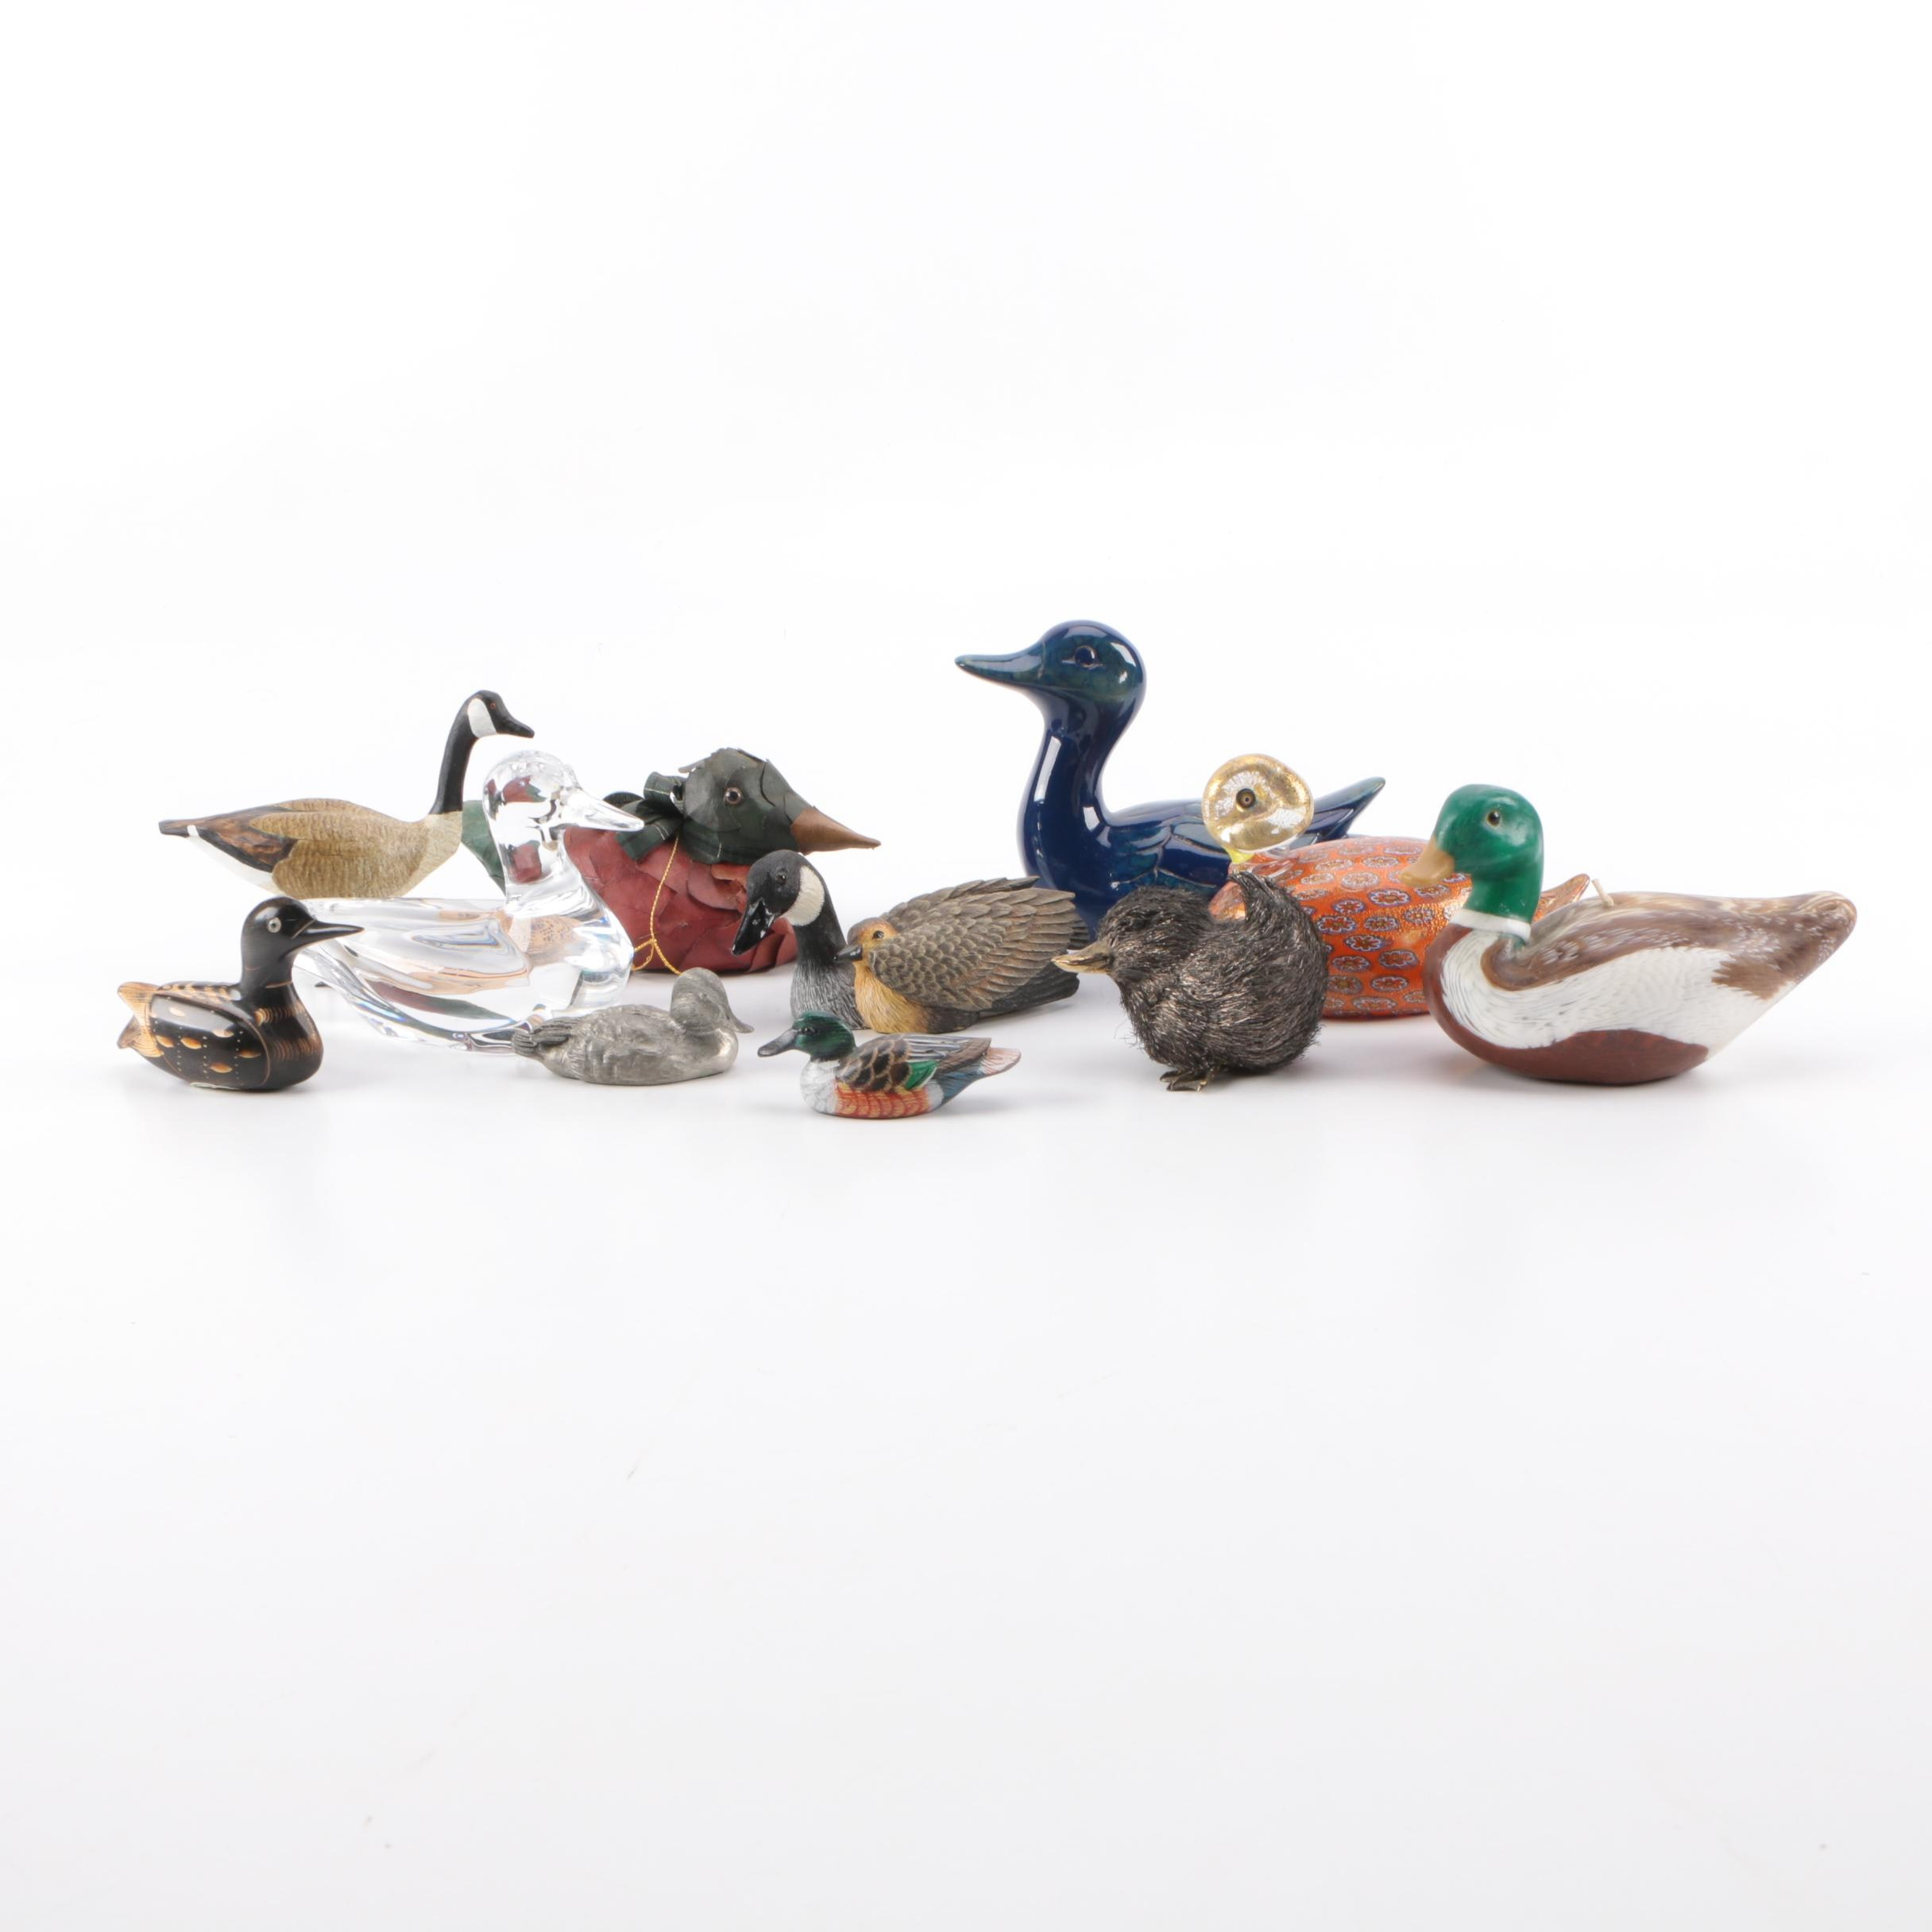 Duck and Goose Figurine Assortment Including Baccarat Crystal